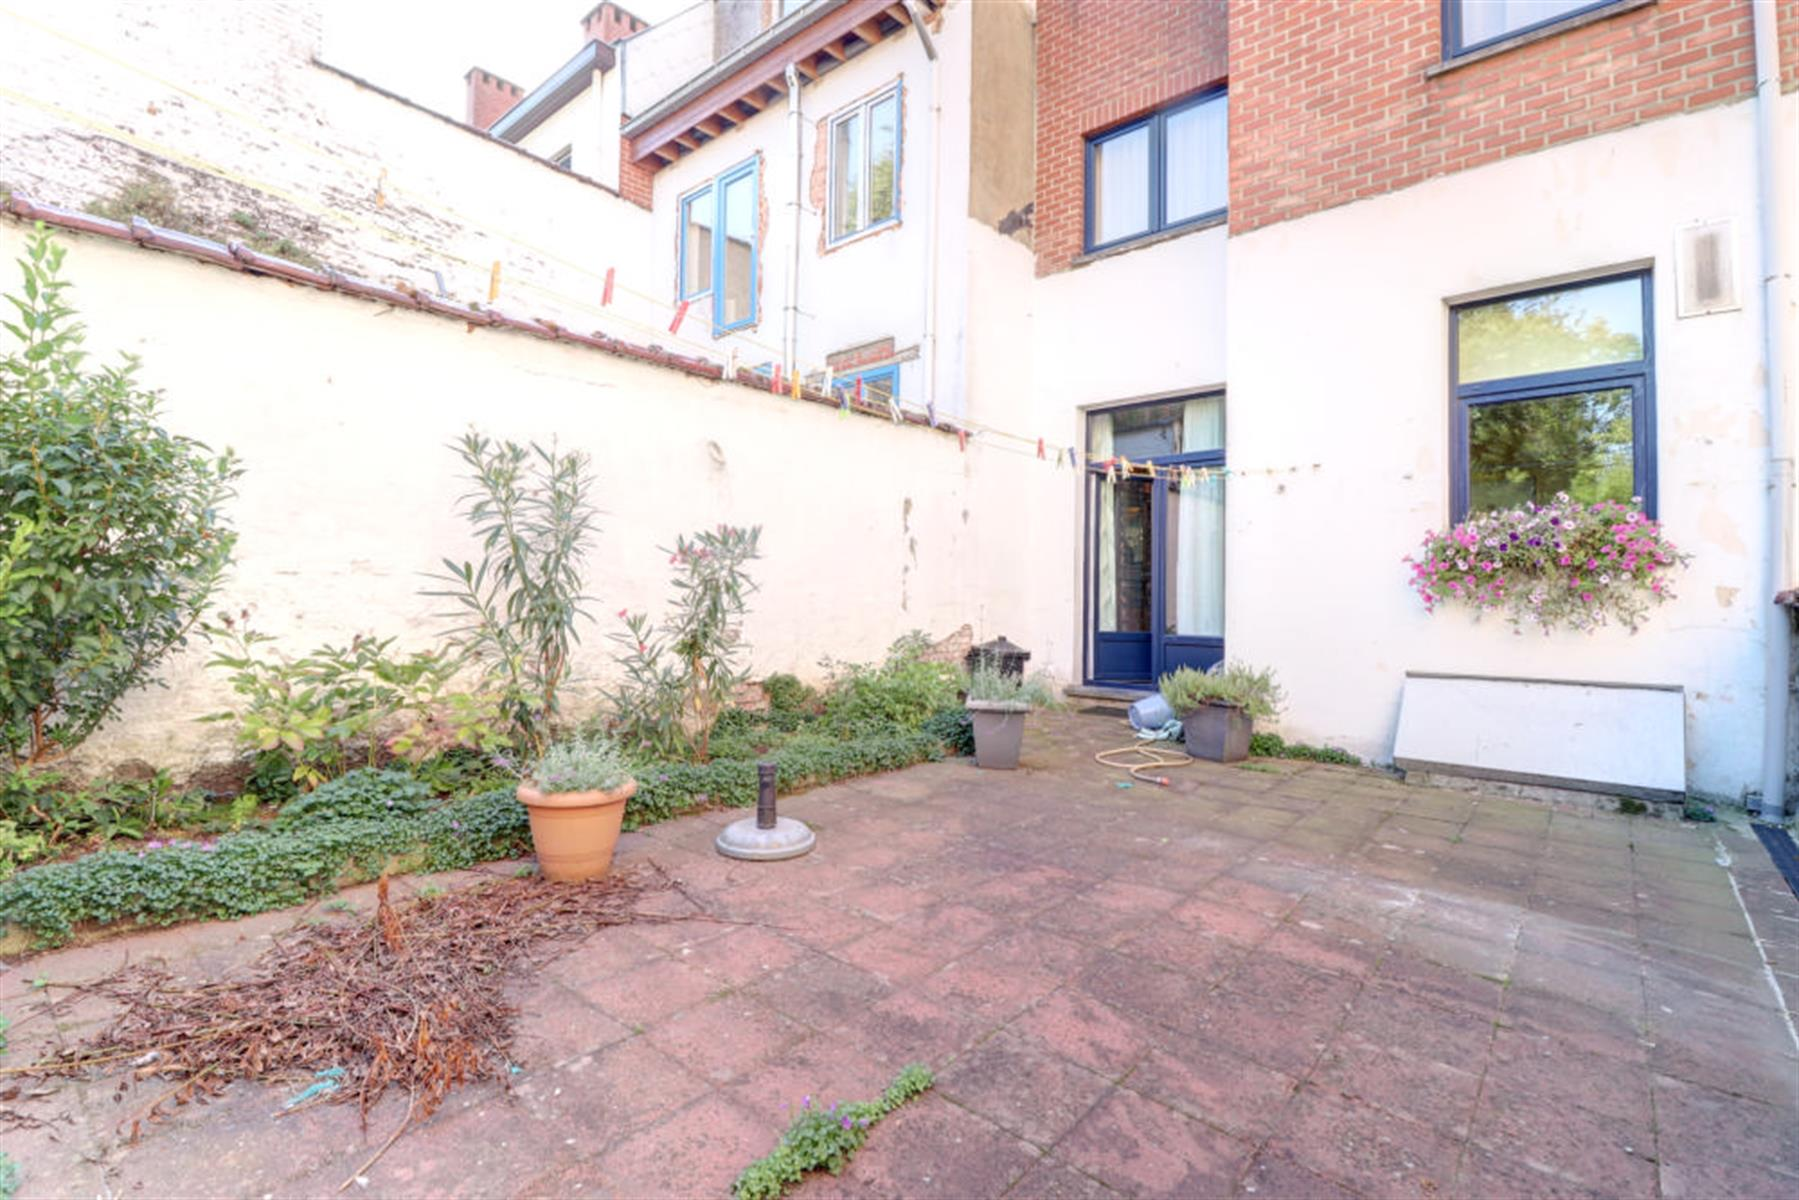 House - Uccle - #3905975-19